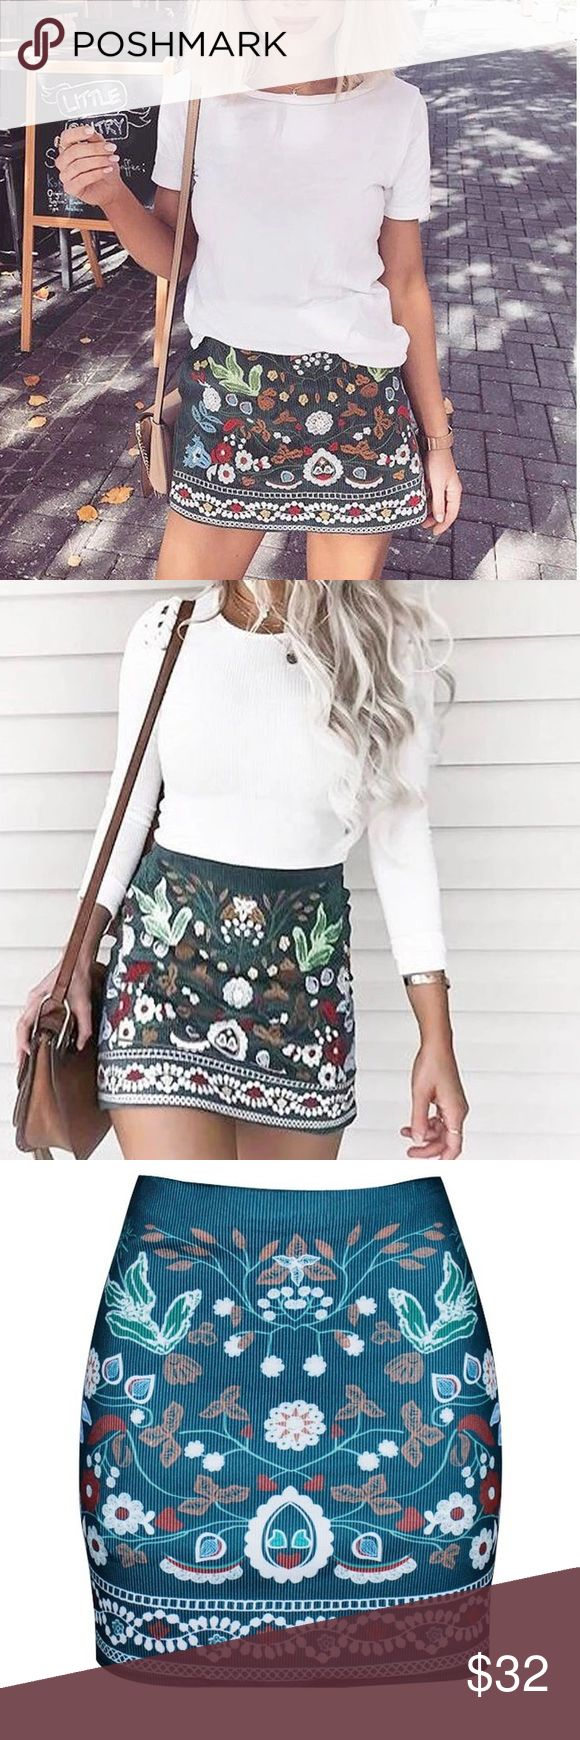 Boho tunic top blouses and dress 4009 trendy boho vintage gypsy -  Boho Floral Print Fitted Mini Skirt Boutique